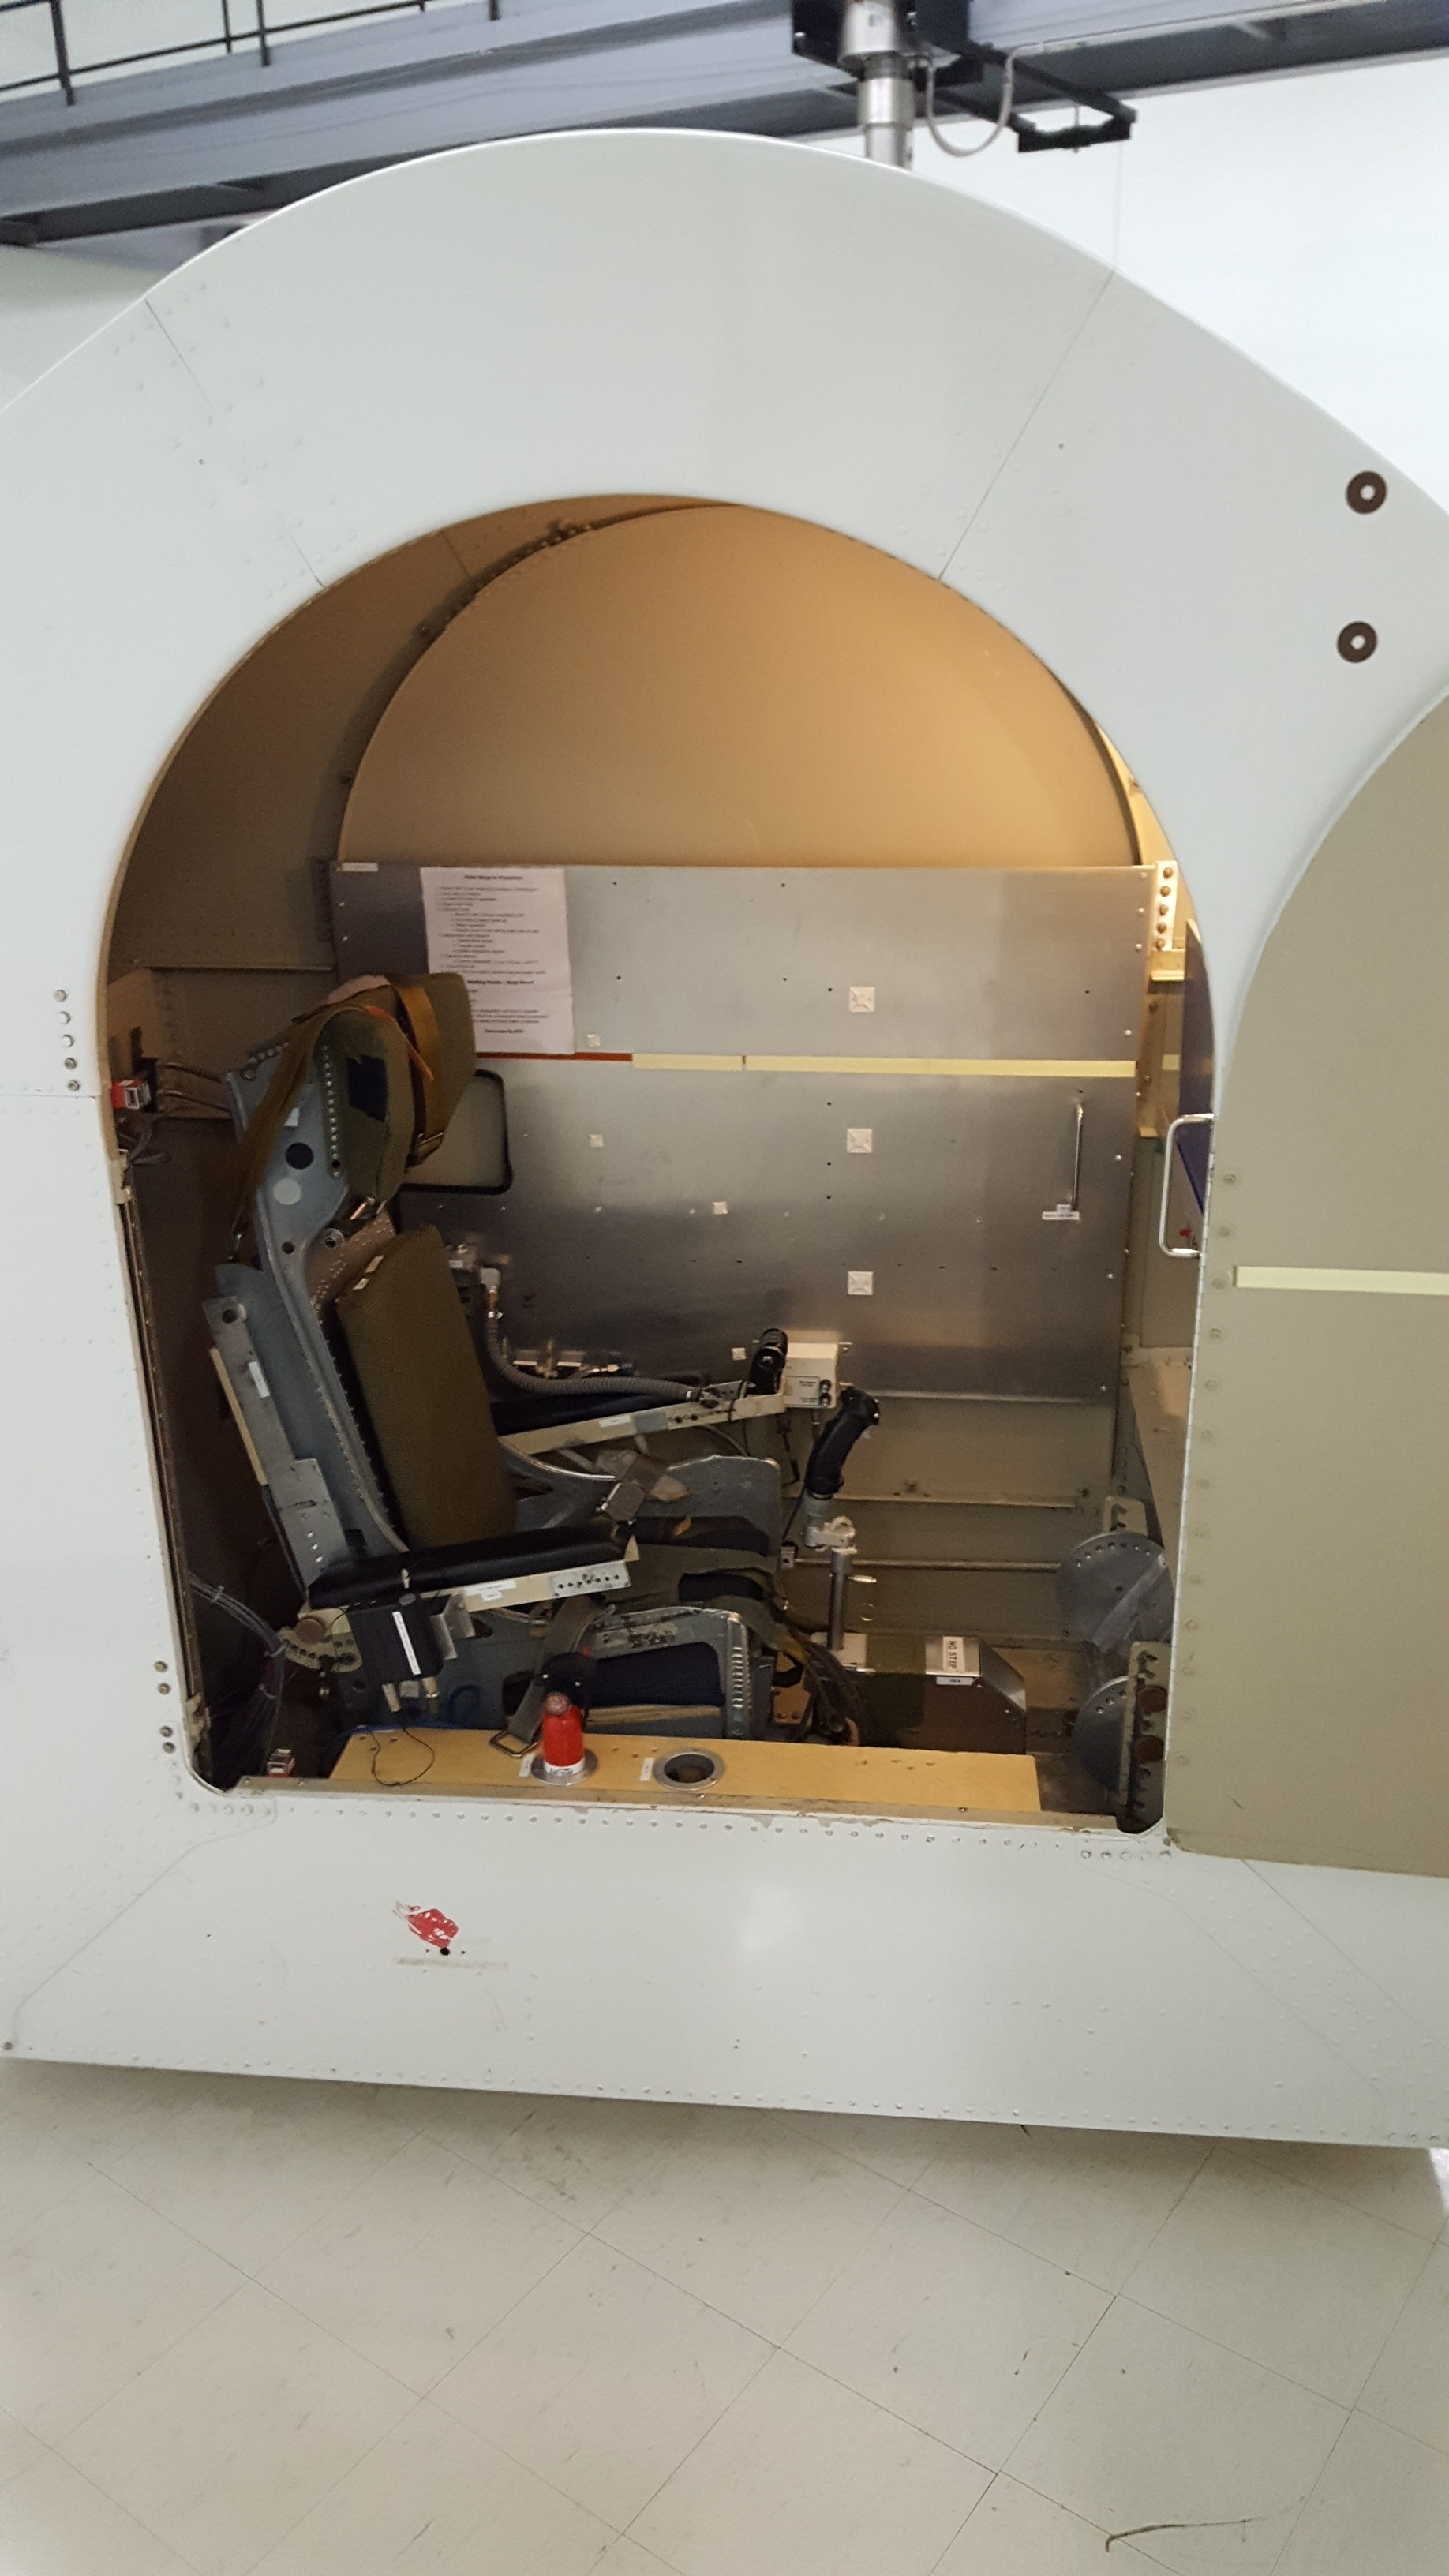 The seat inside the capsule of the centrifuge